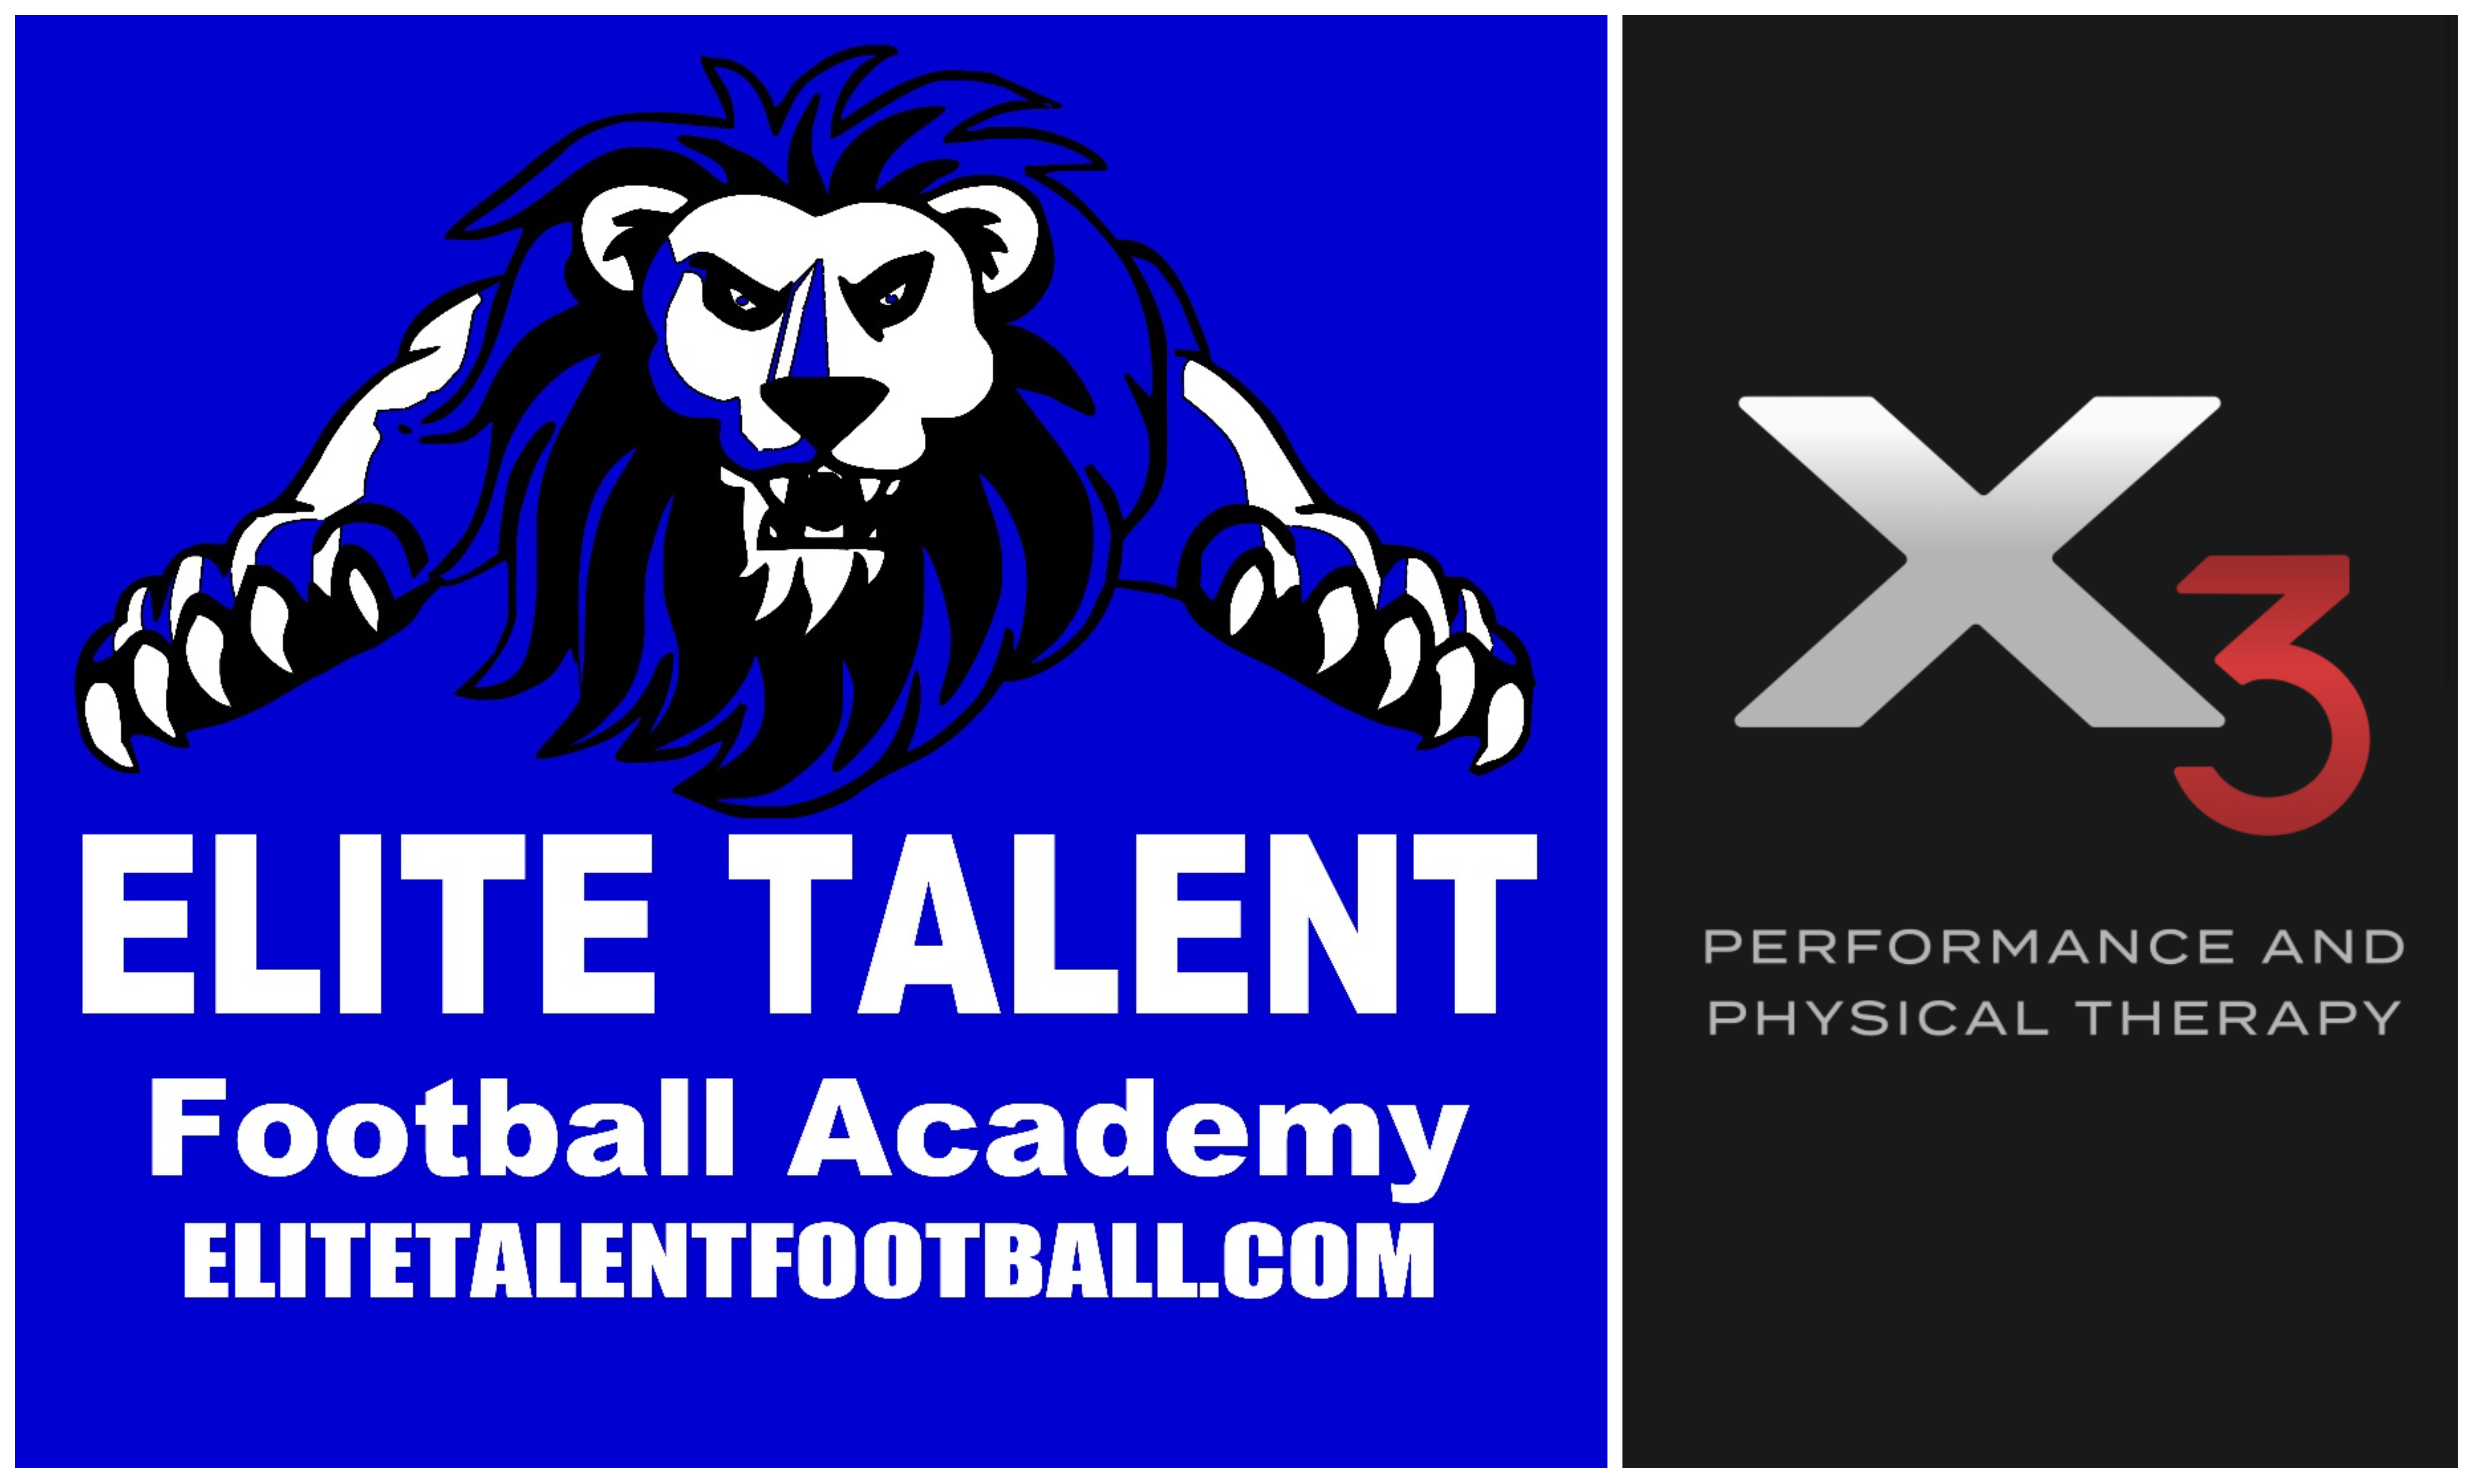 Elite Talent Football Academy Partners With National Playmakers Academy And X3 Performance and Physical Therapy To Launch New Facility